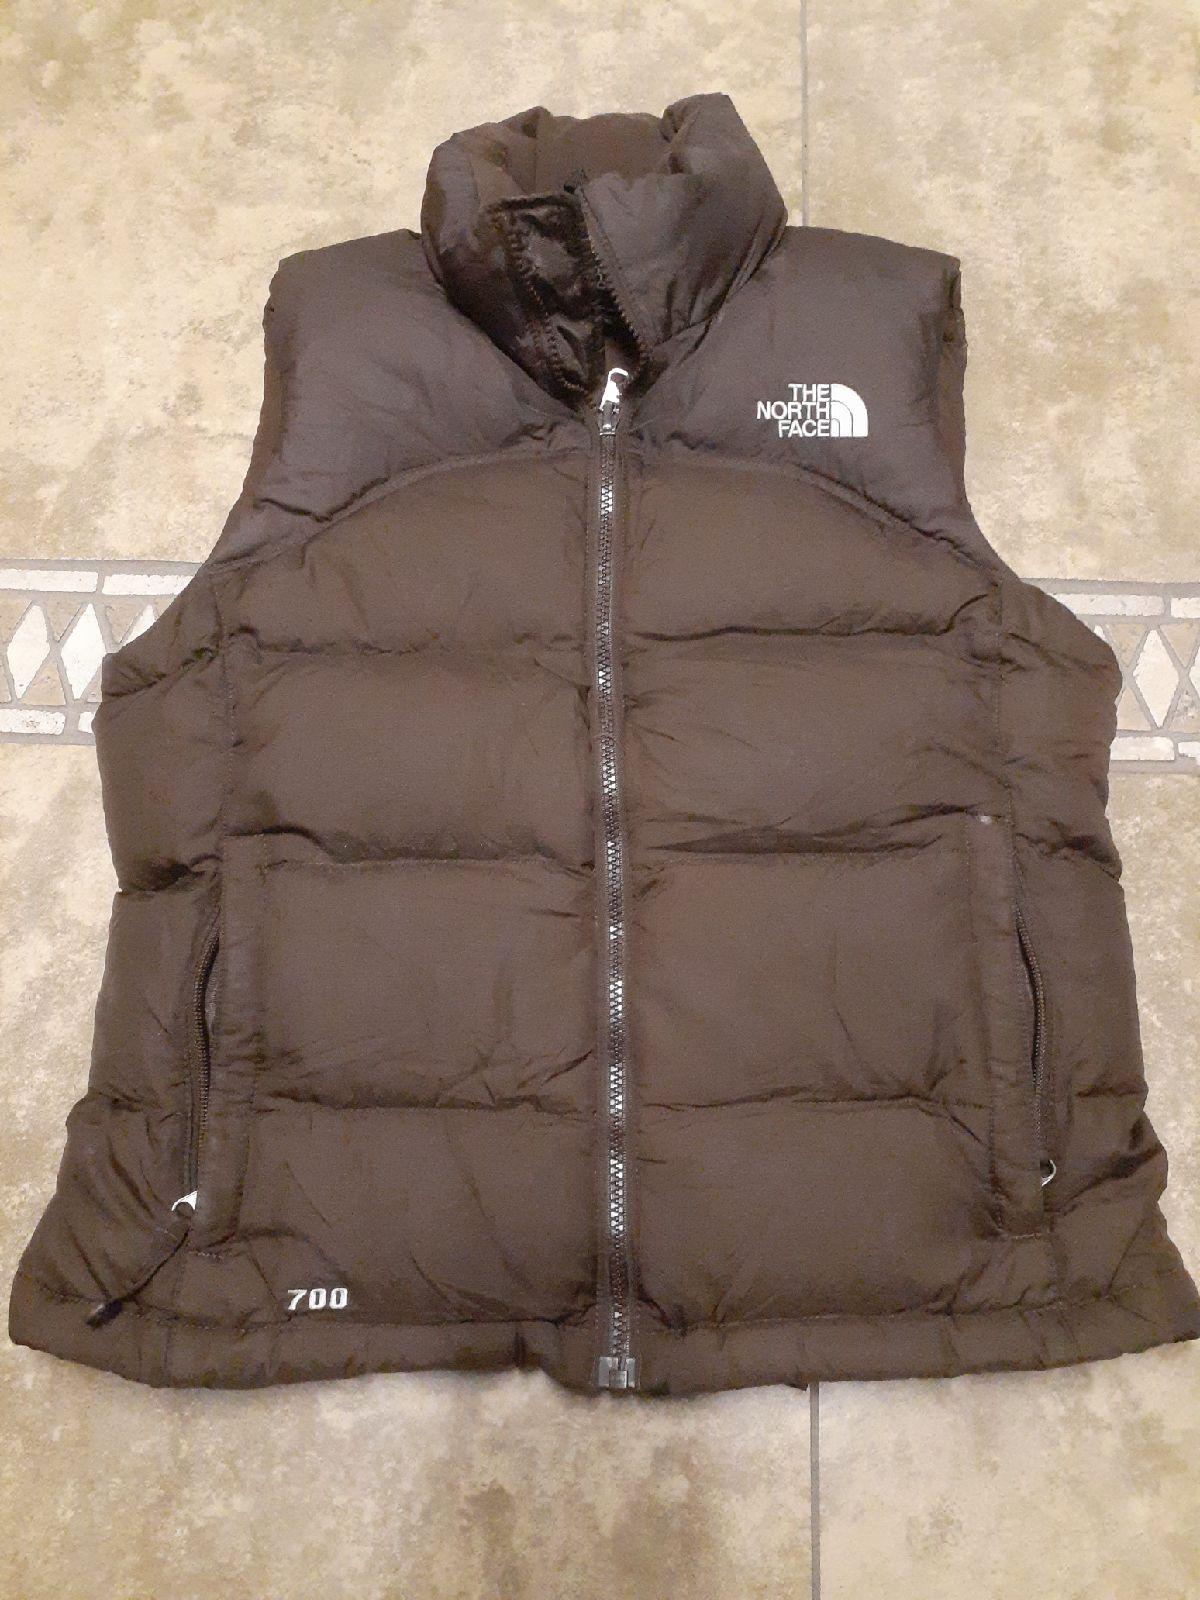 The North Face Vest Jacket Womens XS